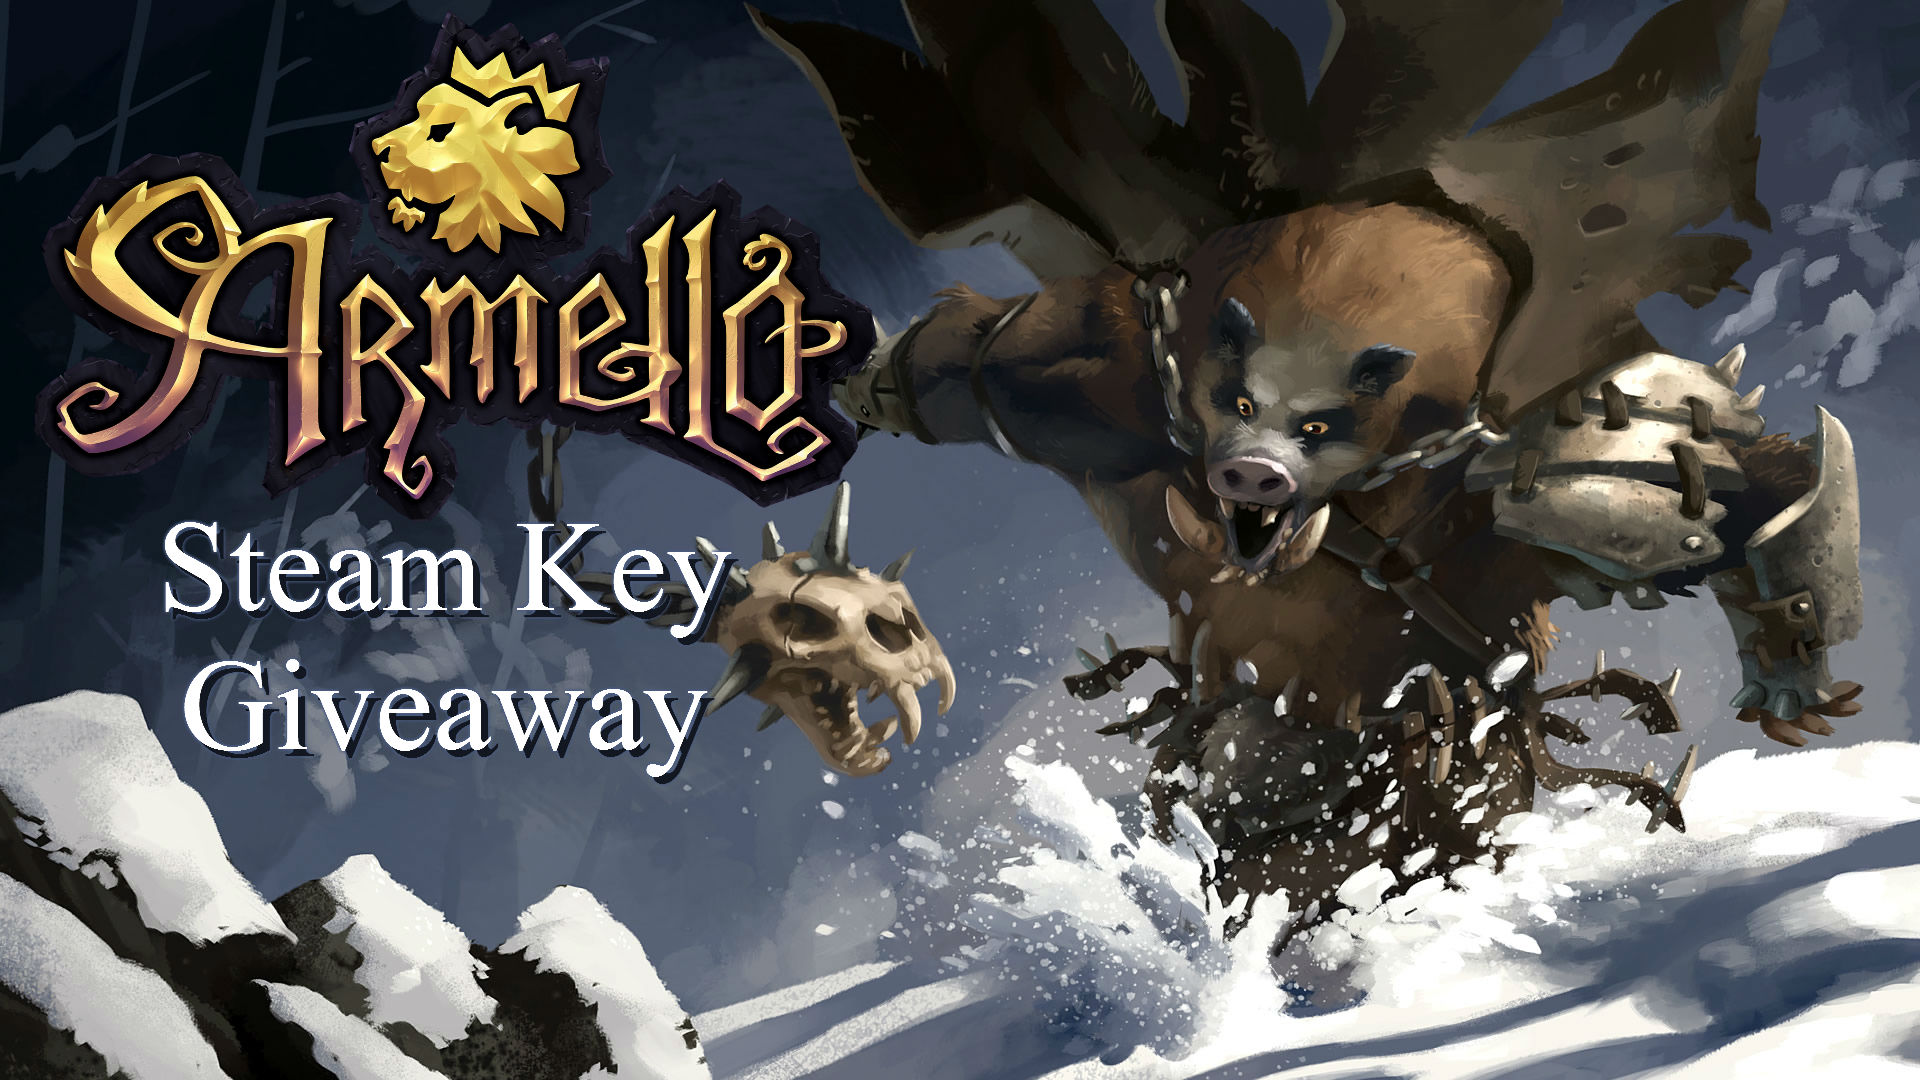 Armello Steam Key Giveaway